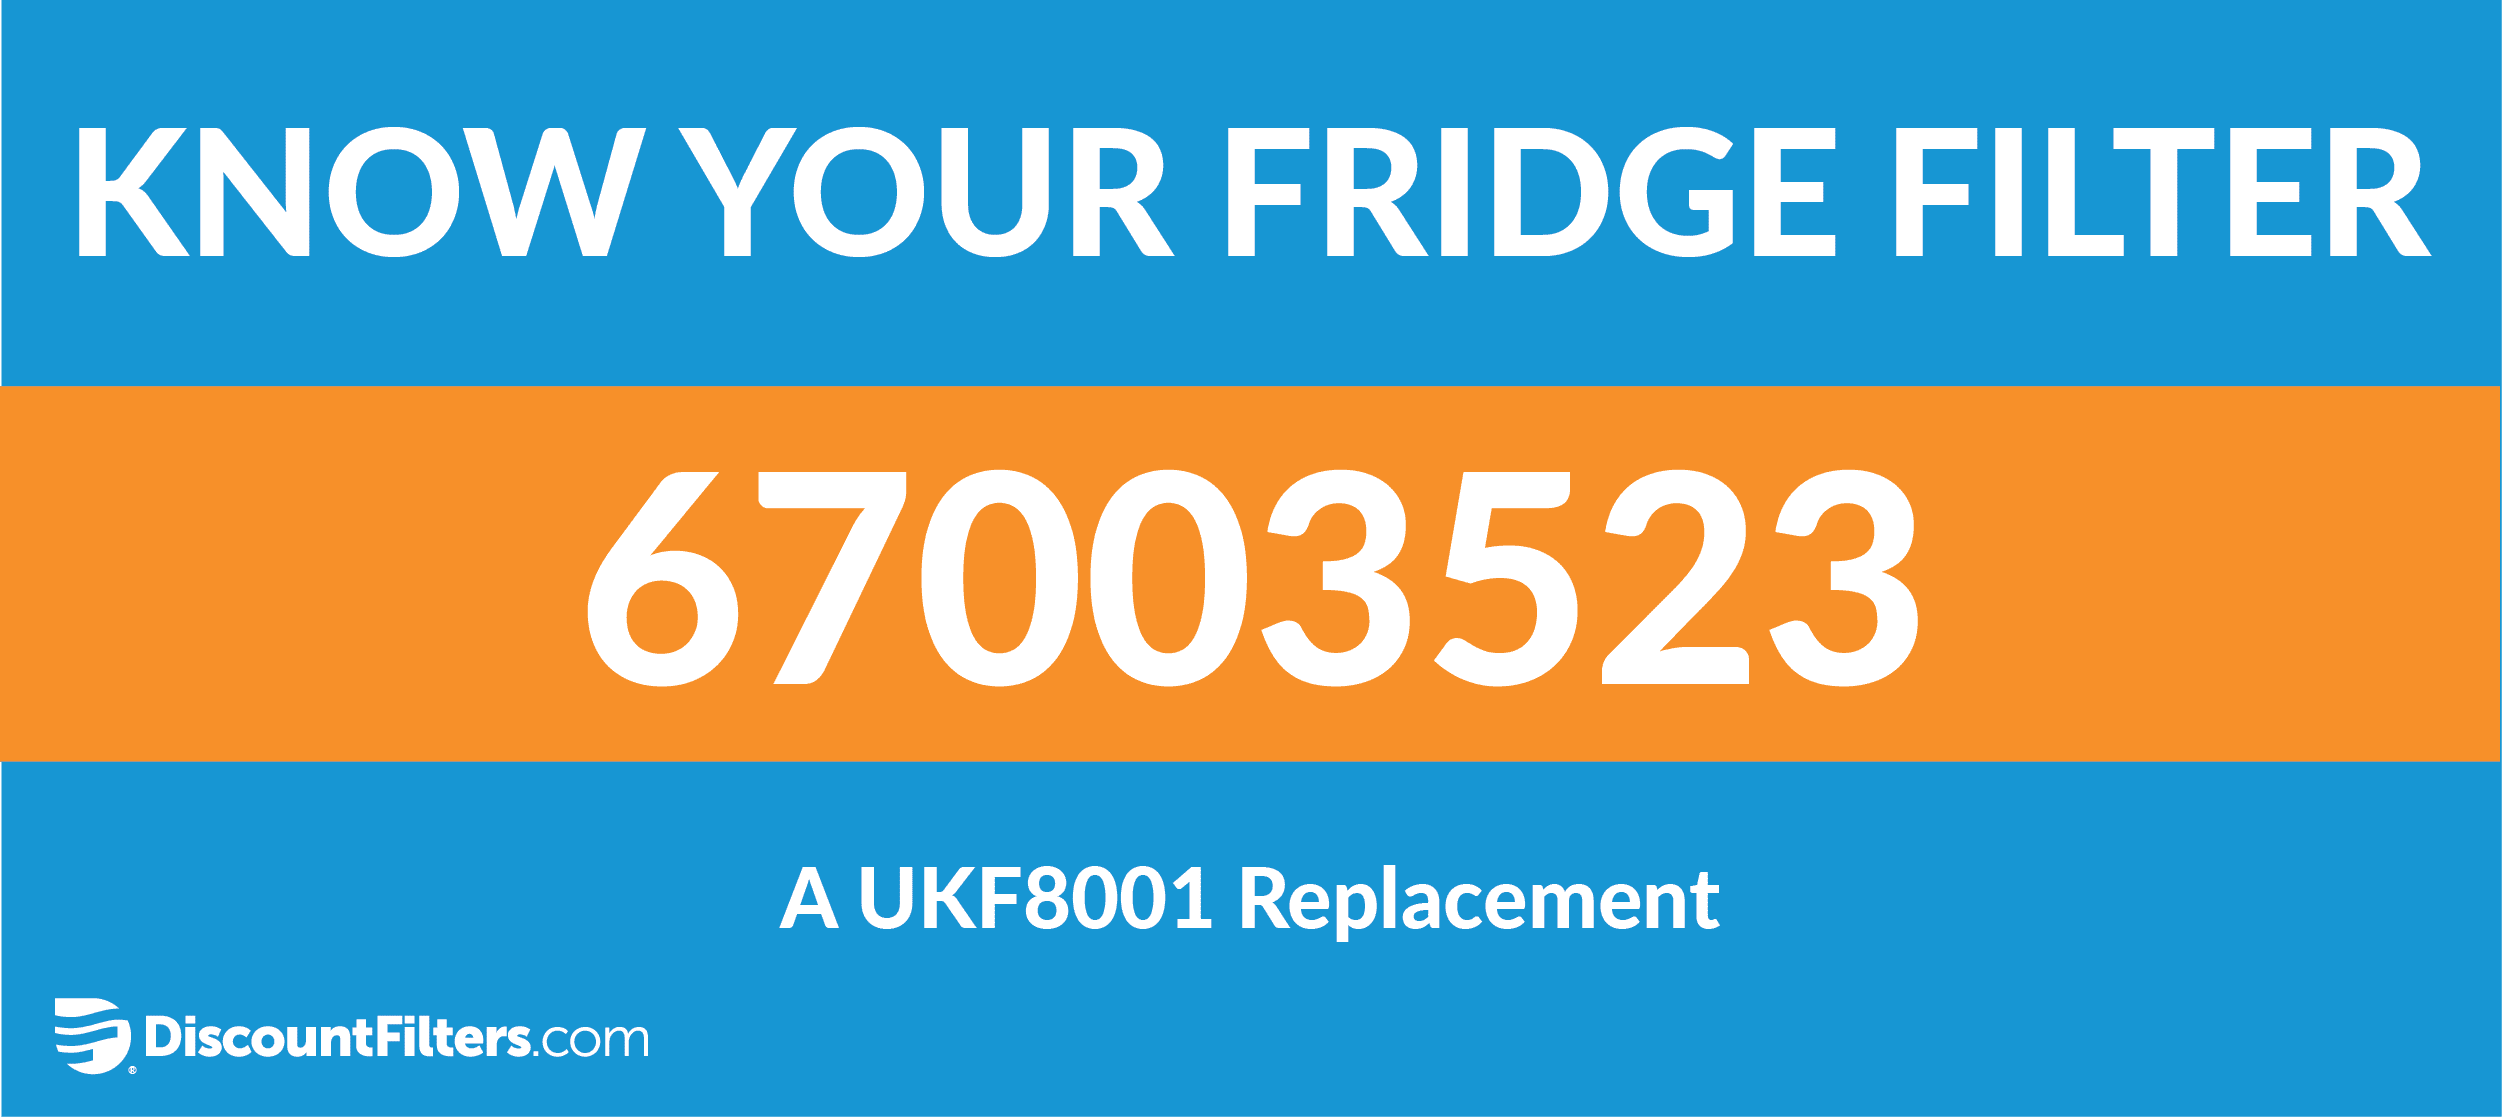 know your fridge filter: 67003523 a ukf8001 replacement